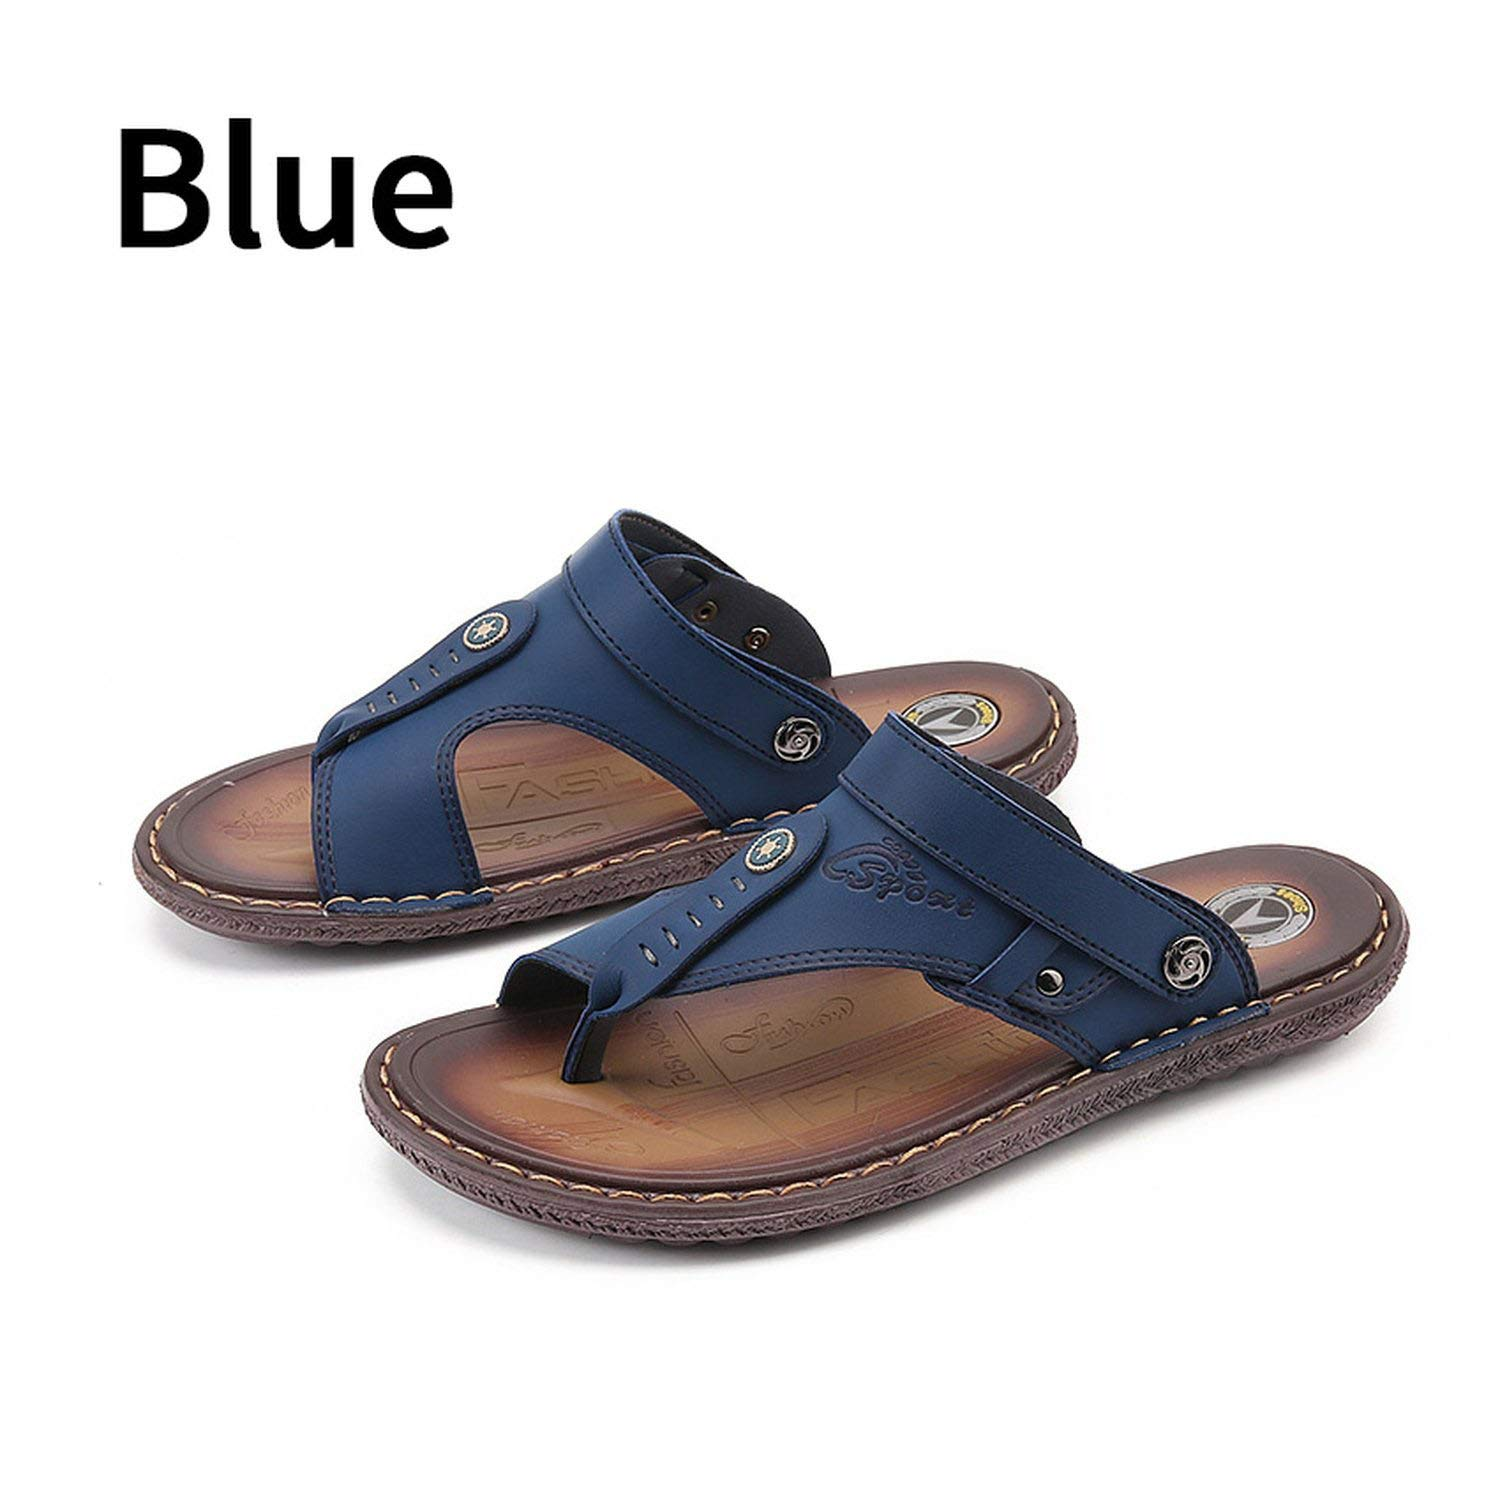 c971eb8286f I m good at you Brand Fashion Men Beach Sandals Leather Beach Sandals  Summer Breathable Casual Shoes